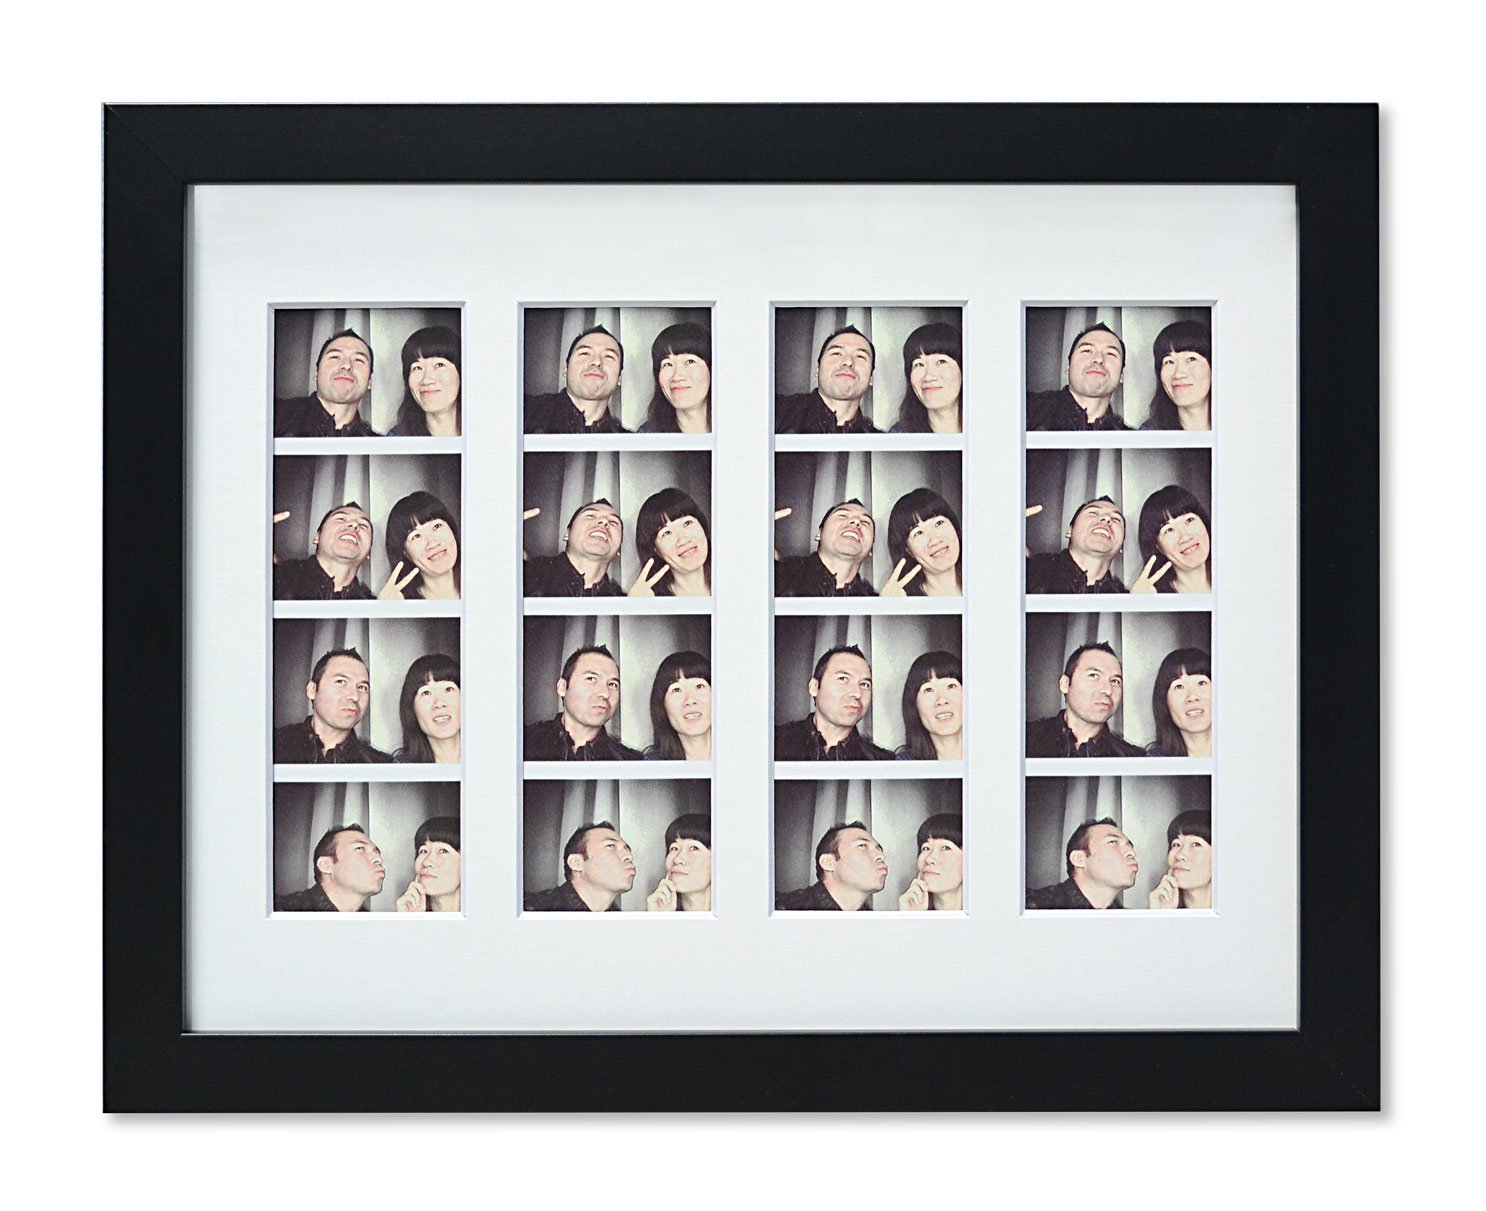 Golden State Art, 8.5x11 Photo Frame with mat for 4 2x6 Photo Booth Pictures with, Black. Includes Real Glass & Easel Back Display - New Photo Booth Frame with White Mat & Real Glass. Outside frame size: 9x12 inches Can display 4 2x6 photo booth strips or 8.5x11 photo without mat With 2 hangers in the back for vertical and horizontal hanging options & Easel Stand for table-top display. - picture-frames, bedroom-decor, bedroom - 71y2Jb%2BX4tL -